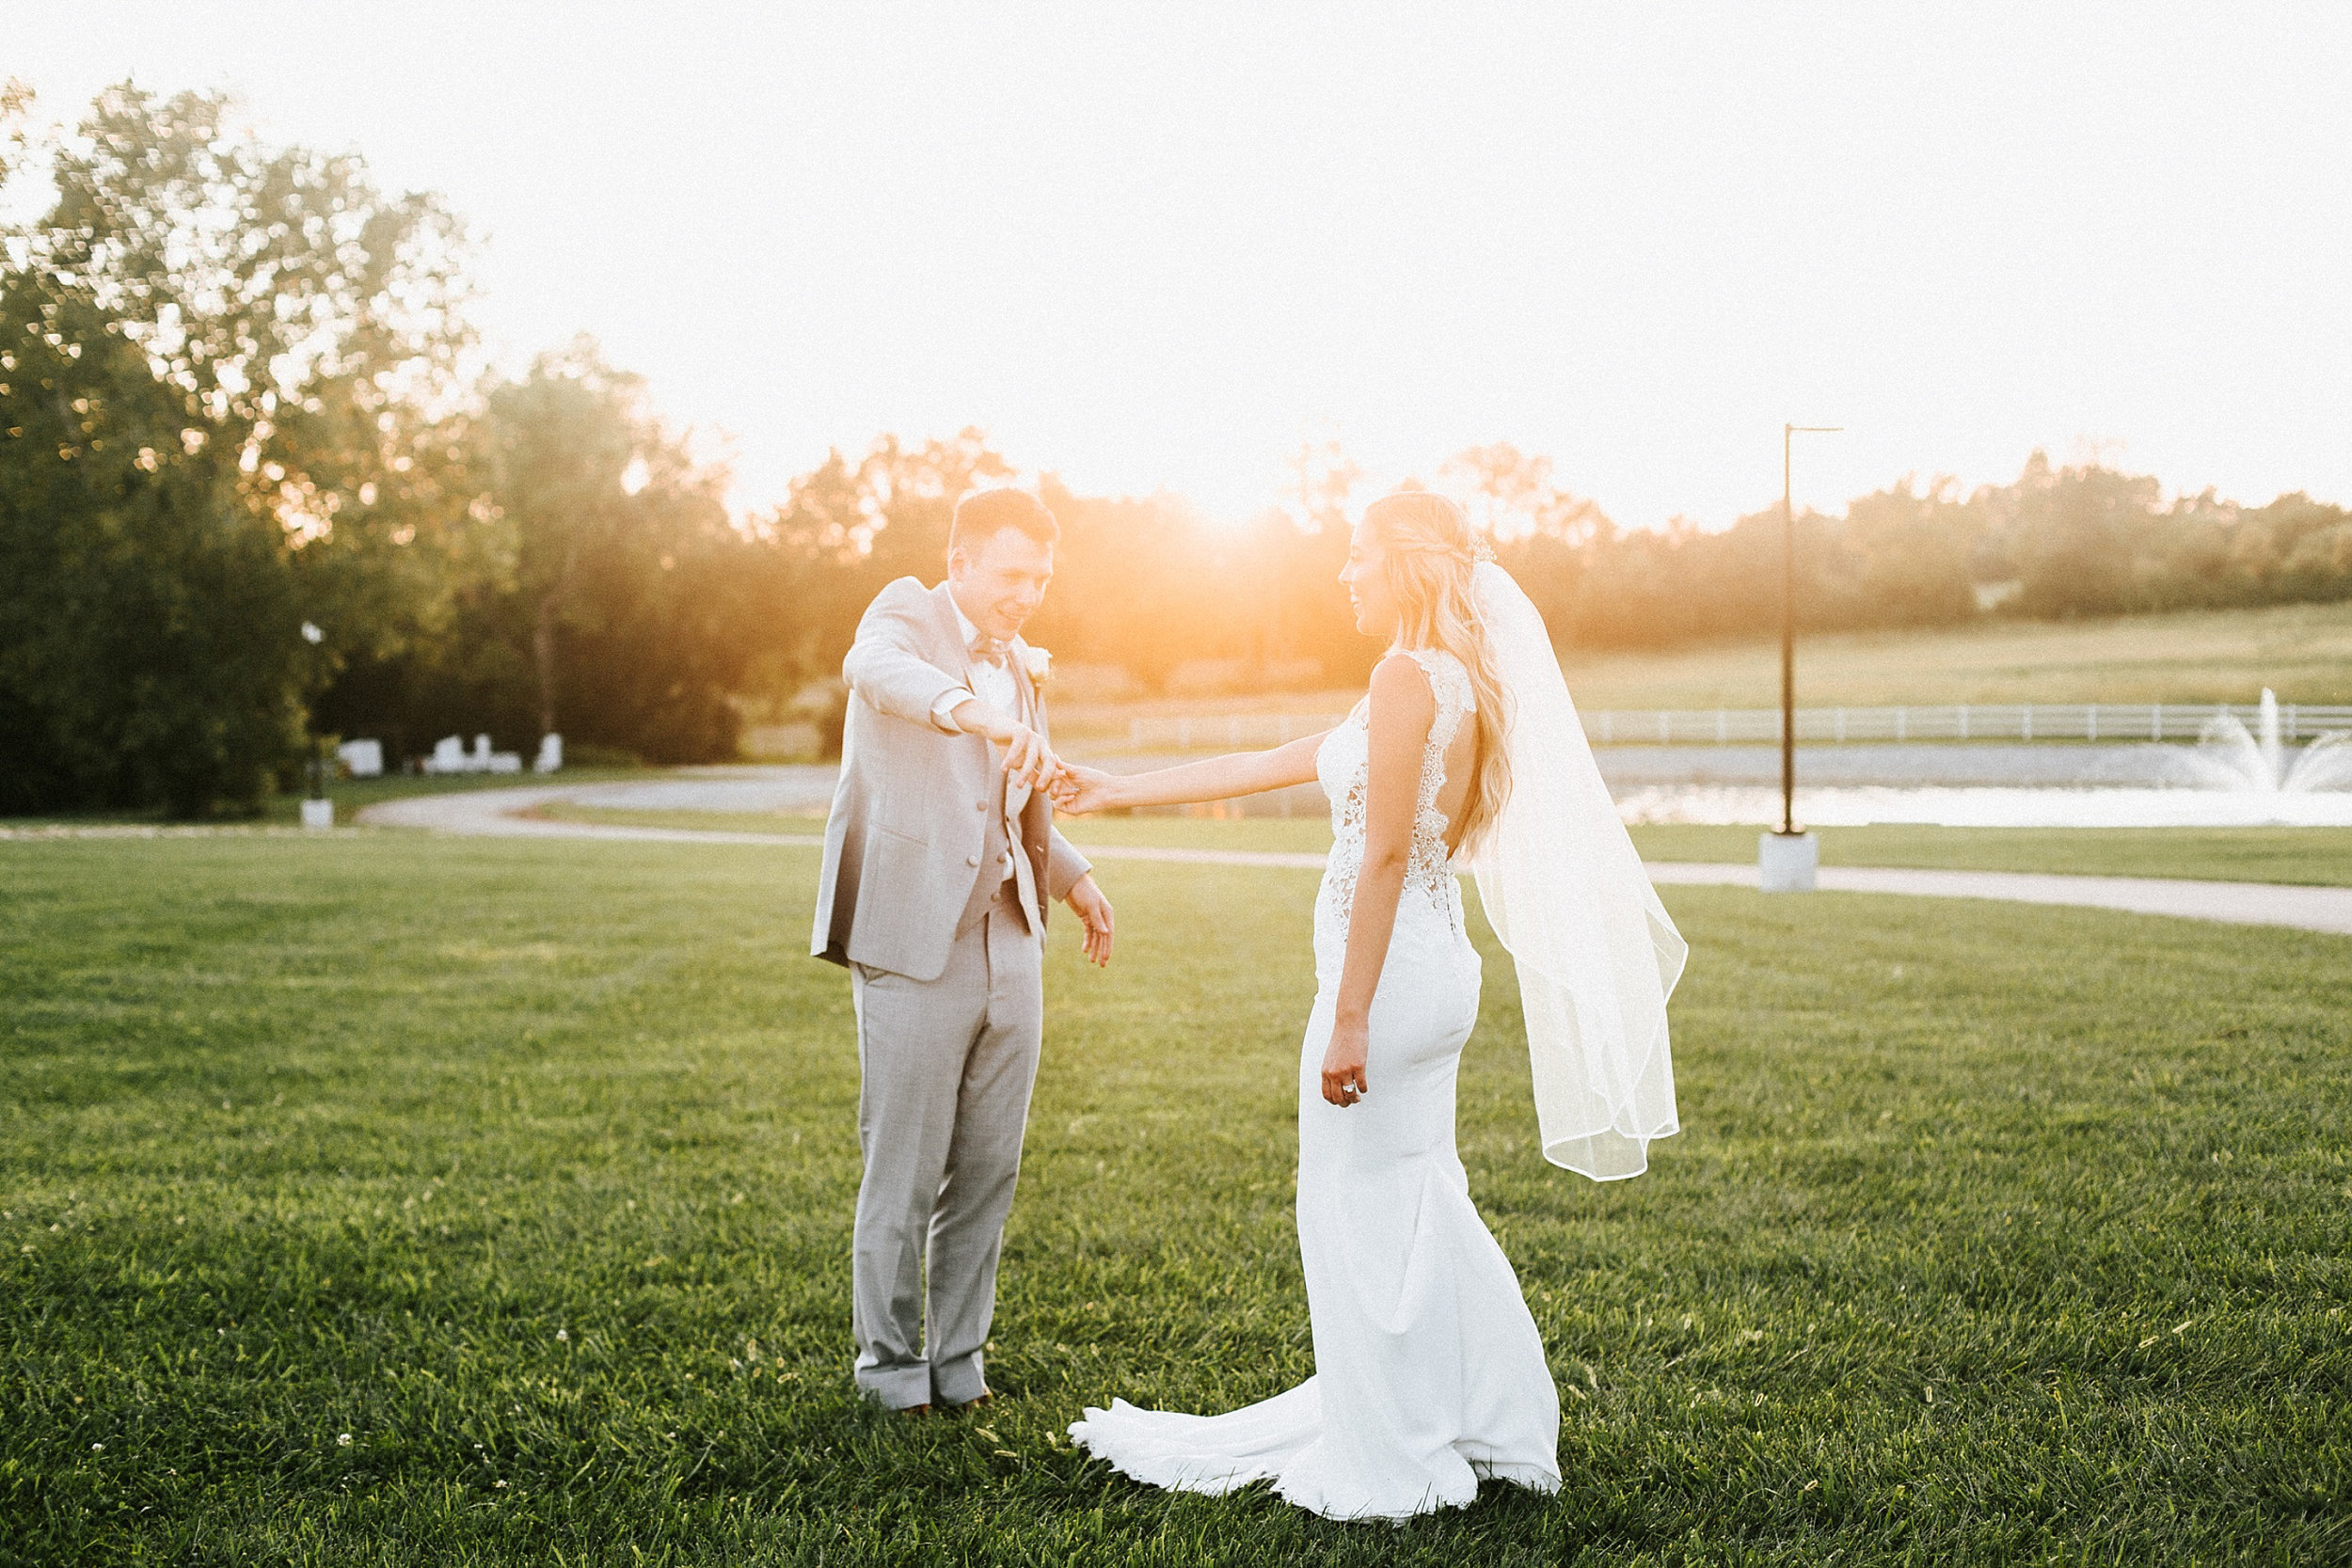 Brooke Townsend Photography - Cincinnati Wedding Photographer (200 of 230).jpg